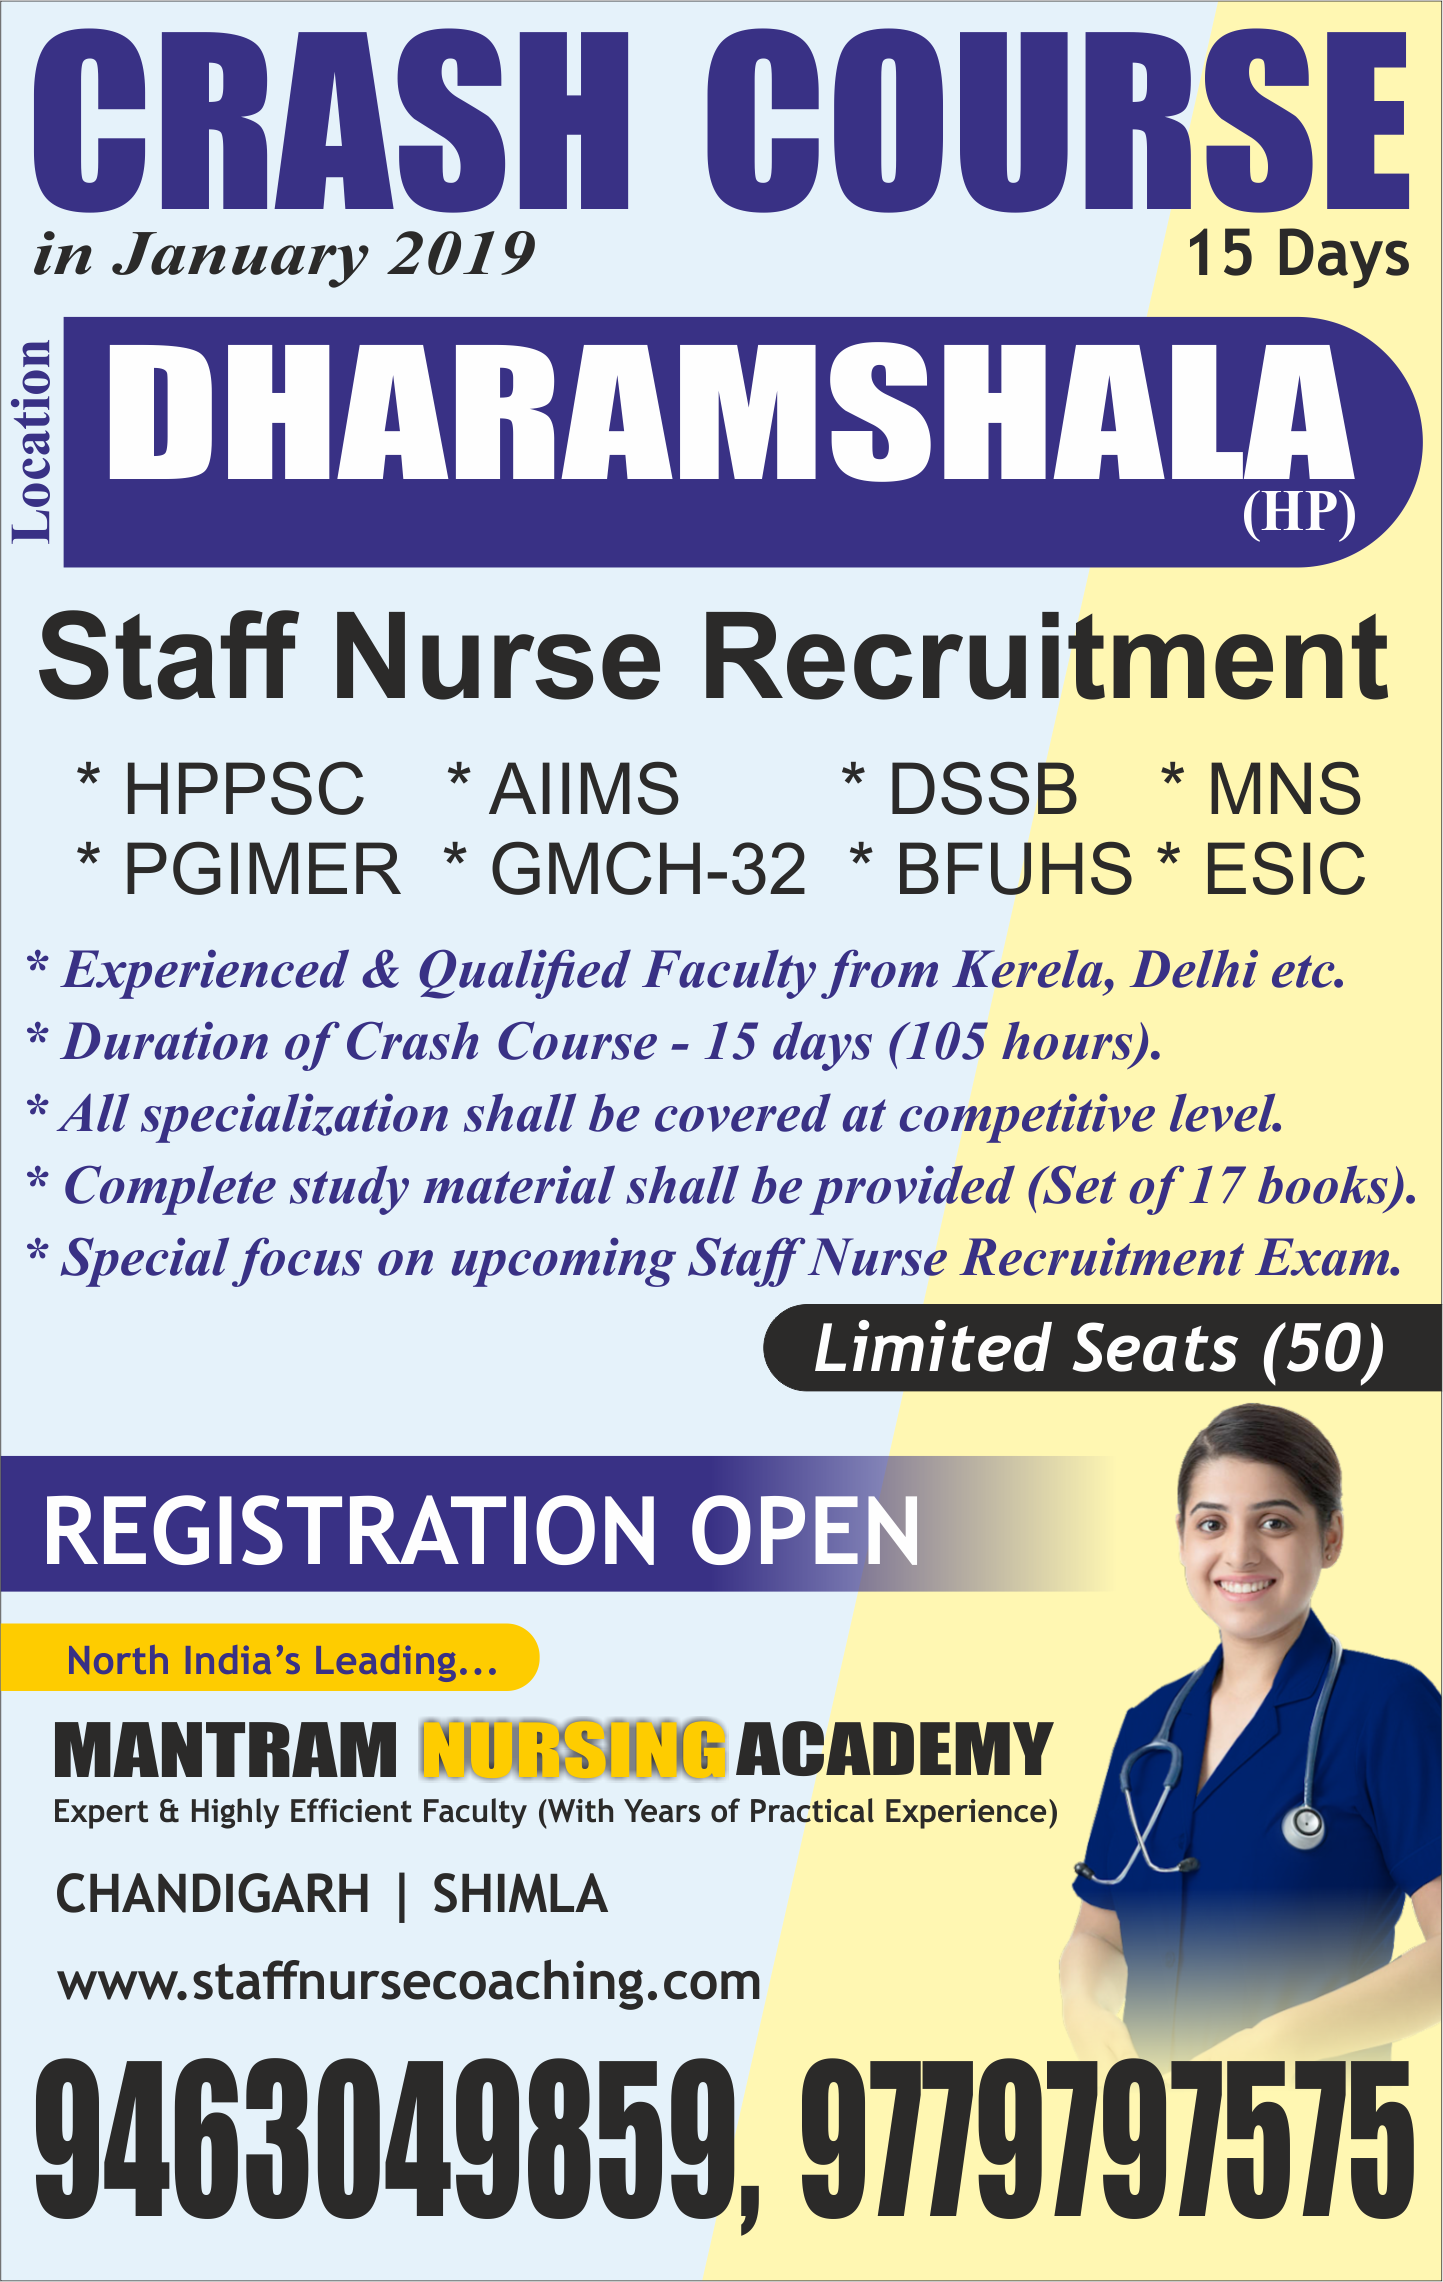 Staff Nurse Recruitment Dharamshala Crash Course 15.12.2018